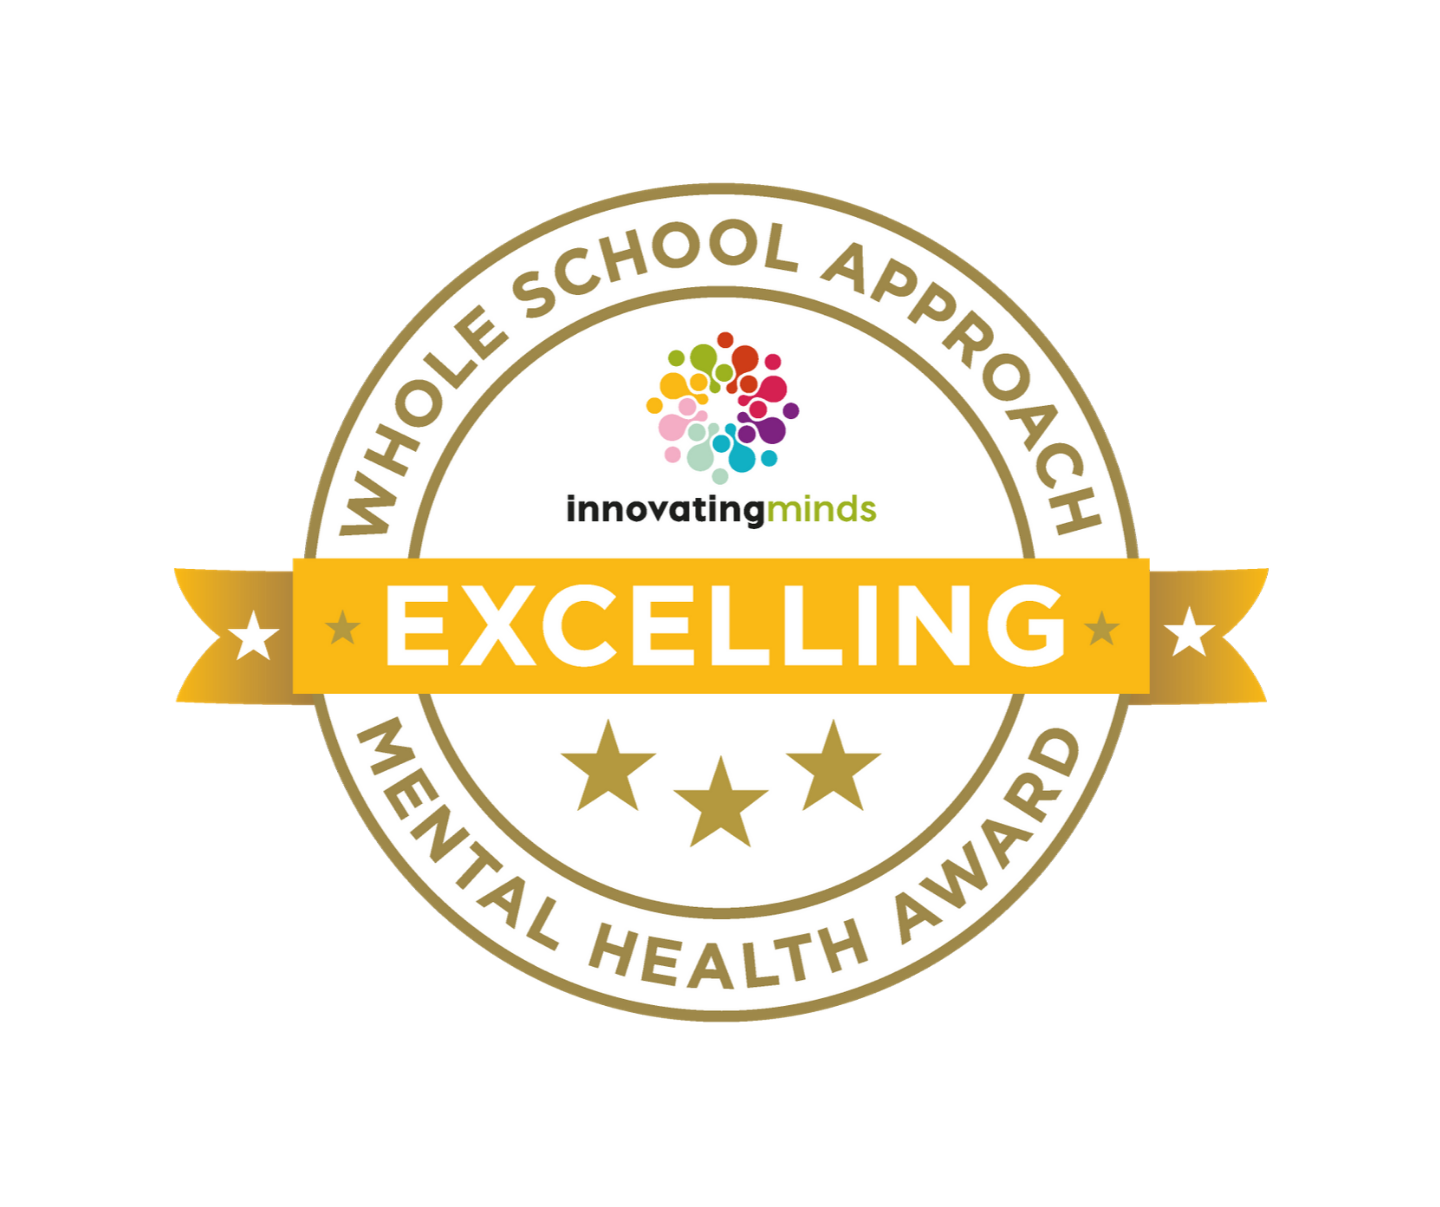 Excelling-Accreditation-Edupod